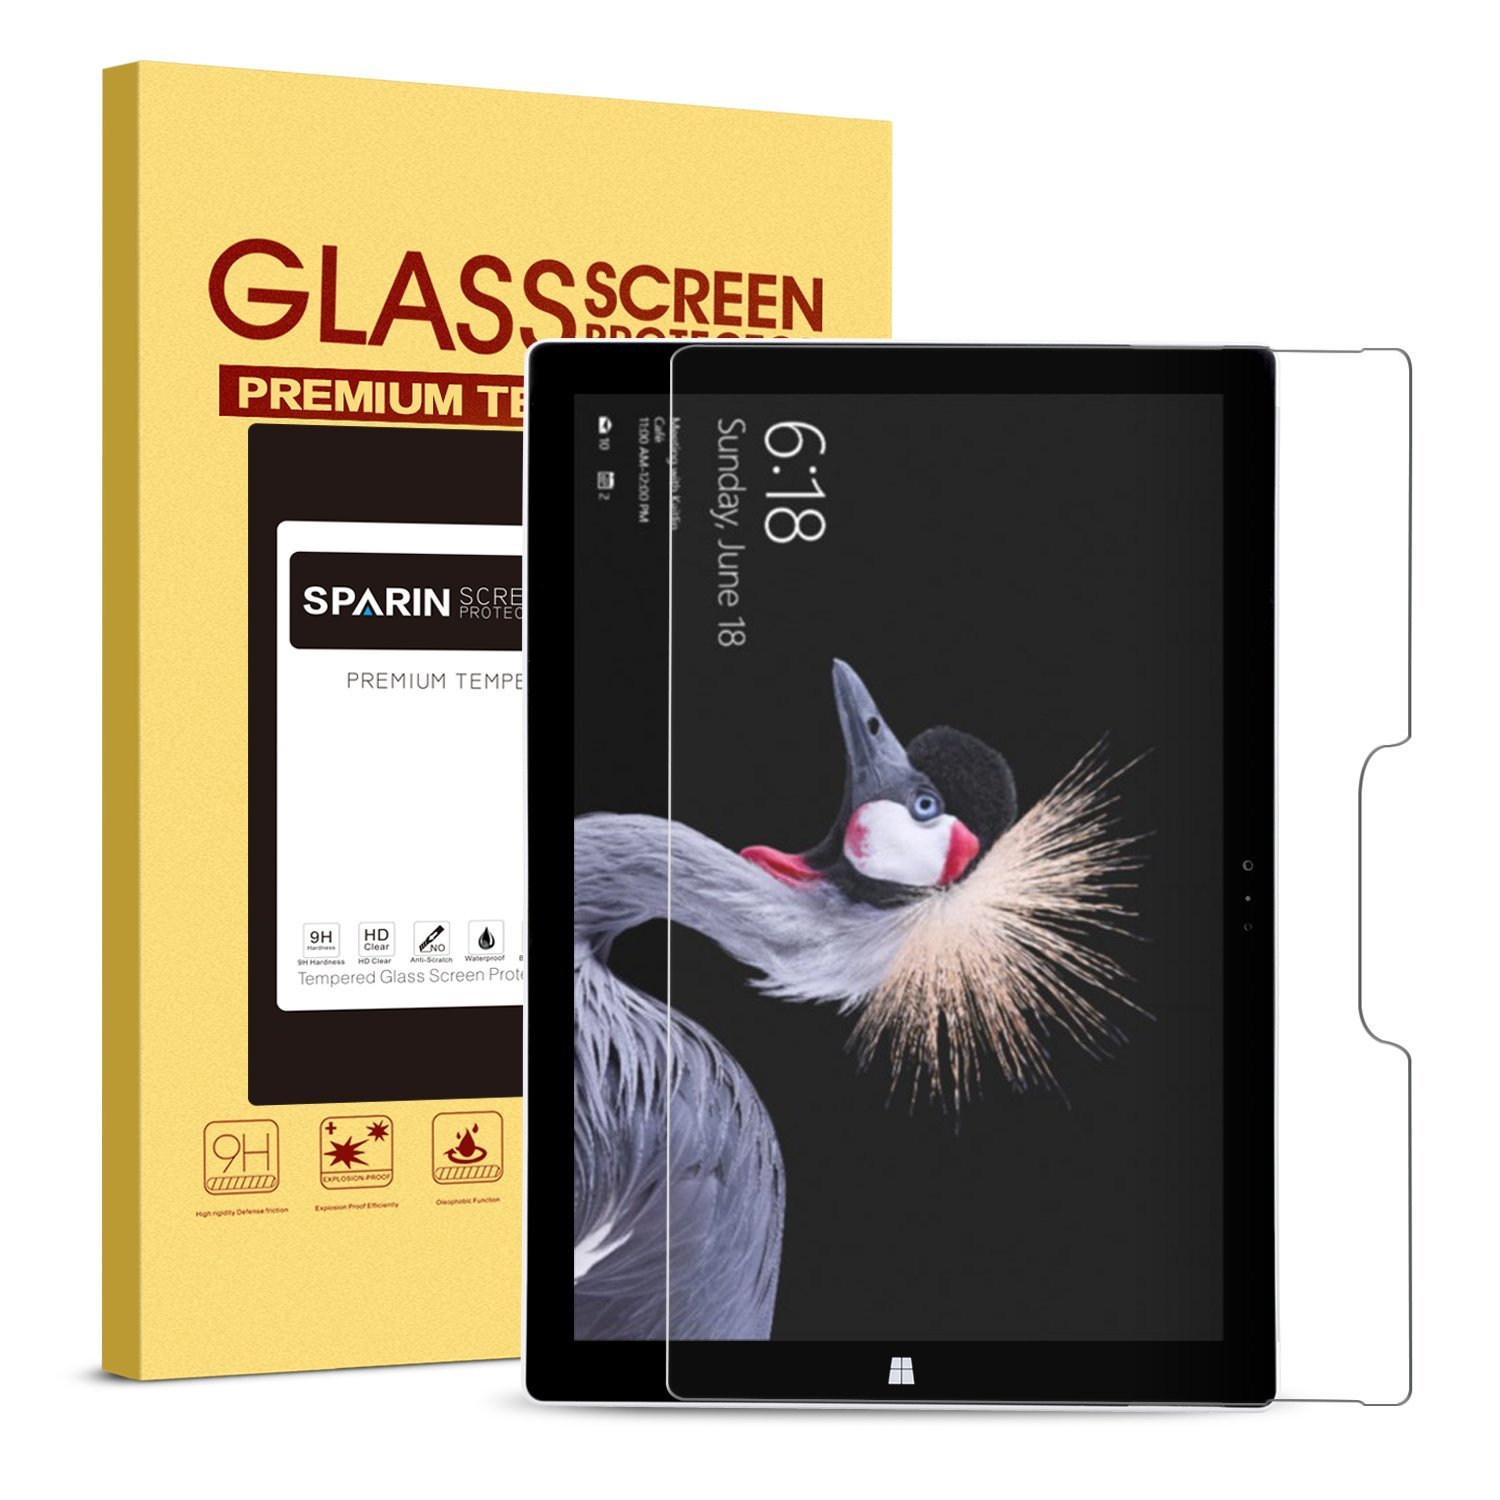 SPARIN New Surface Pro/Surface Pro 4 Screen Protector, Tempered Glass Screen Protector - Maintaining Touchscreen's Responsiveness/Easy Installation / 2.5D Round Edge/Scratch Resistant